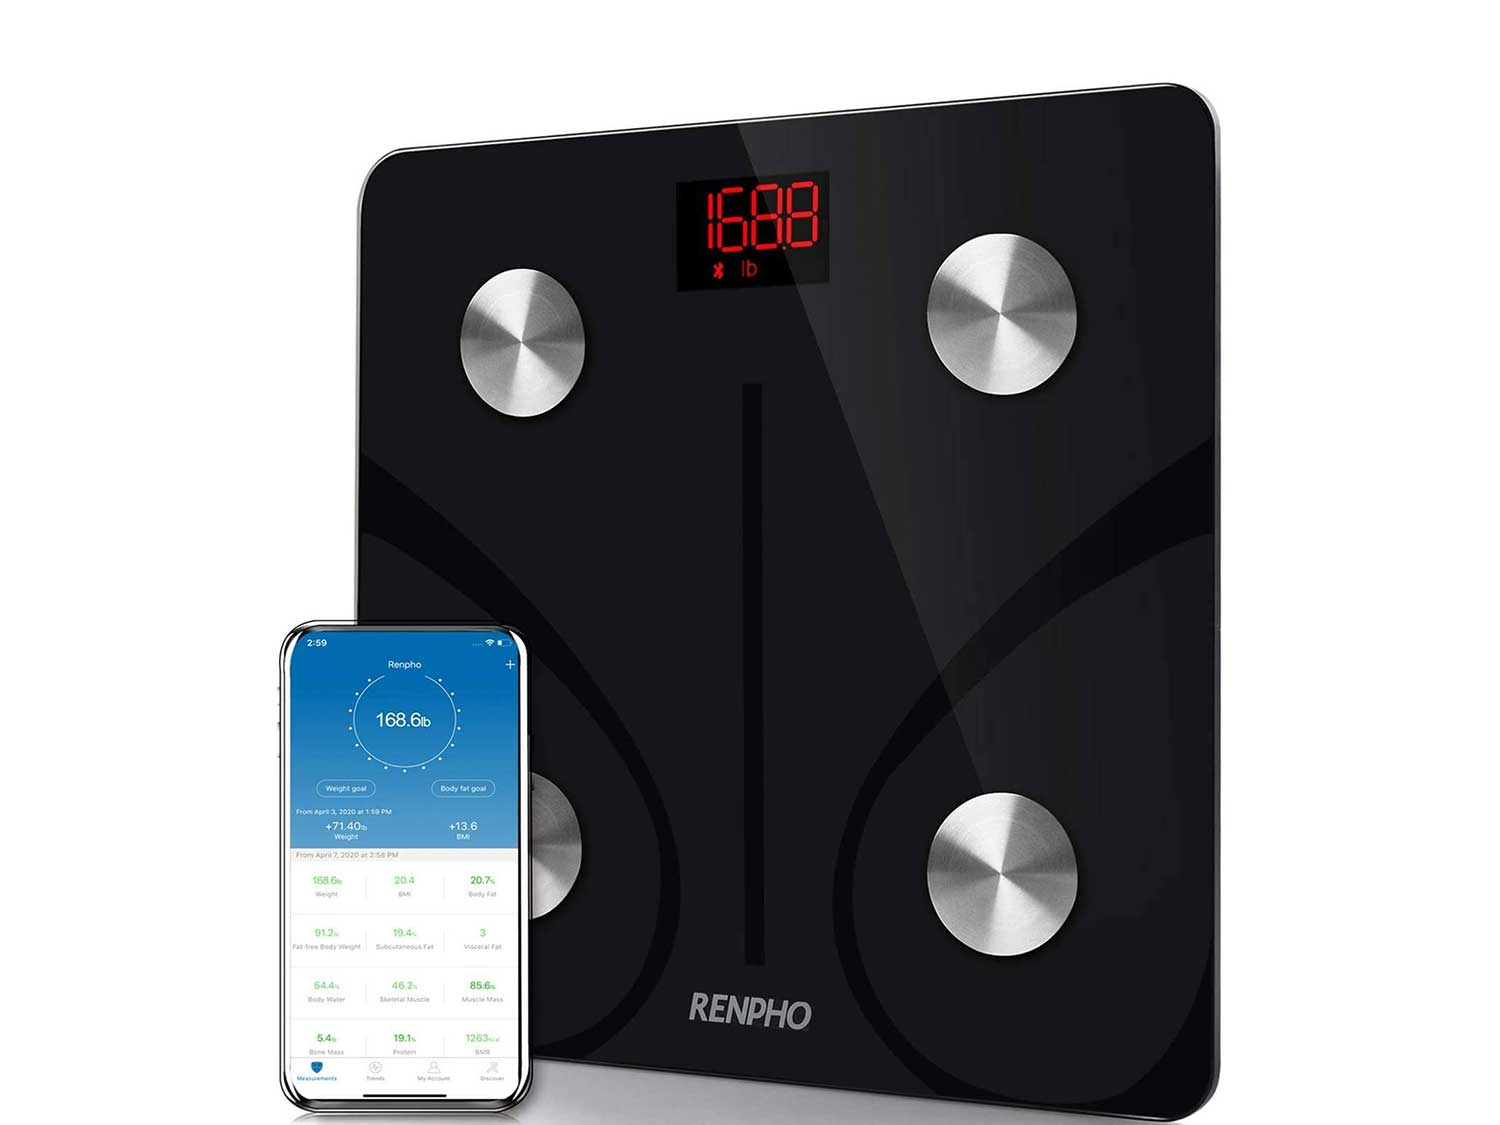 RENPHO Bluetooth Body Fat Scale Smart BMI Scale Digital Bathroom Wireless Weight Scale, Body Composition Analyzer with Smartphone App